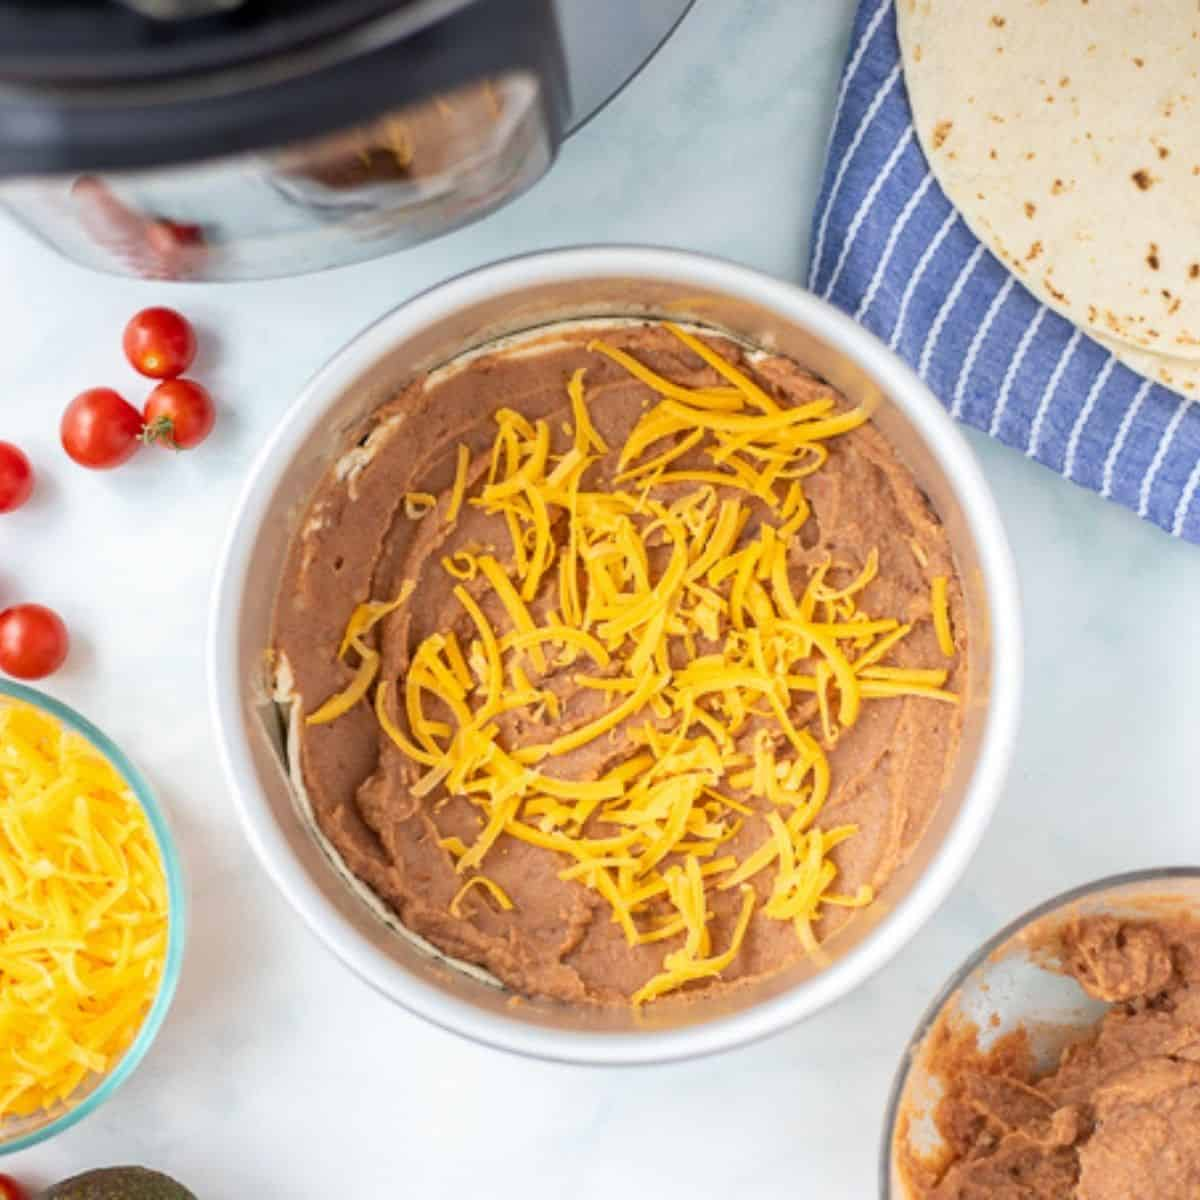 Refried beans and cheese on tortilla next to Instant Pot.